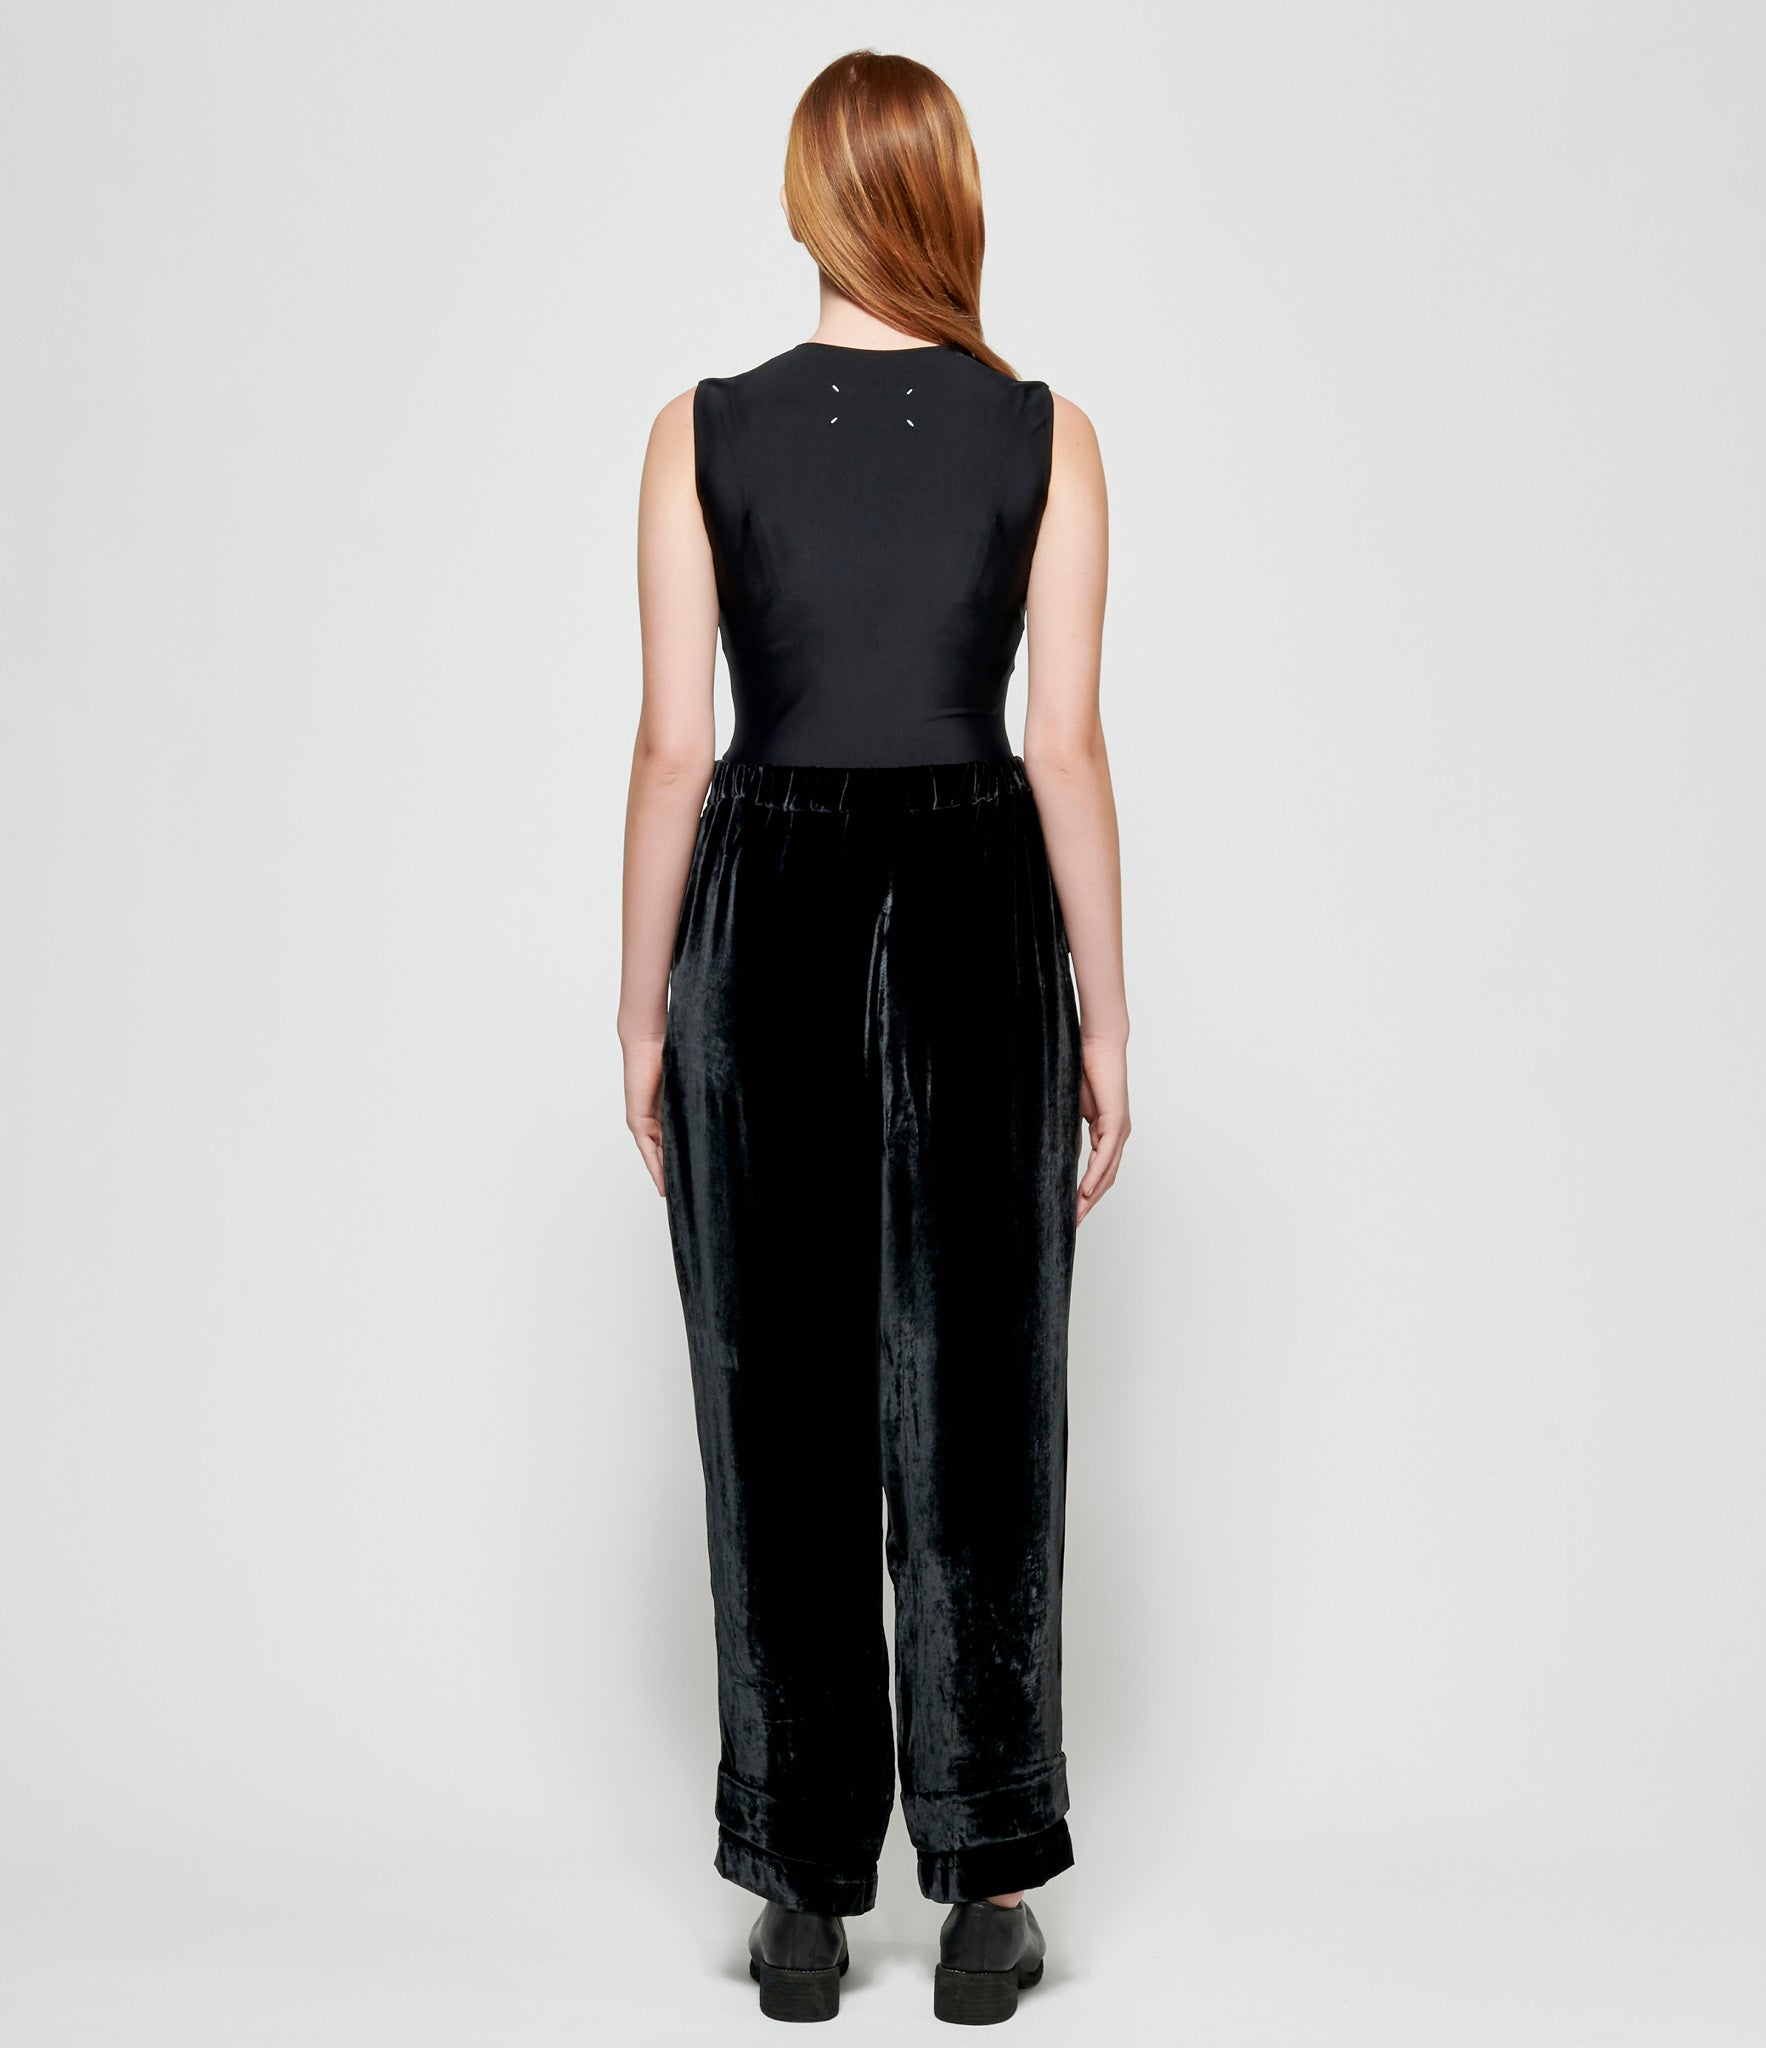 Replika Black Velvet Pants